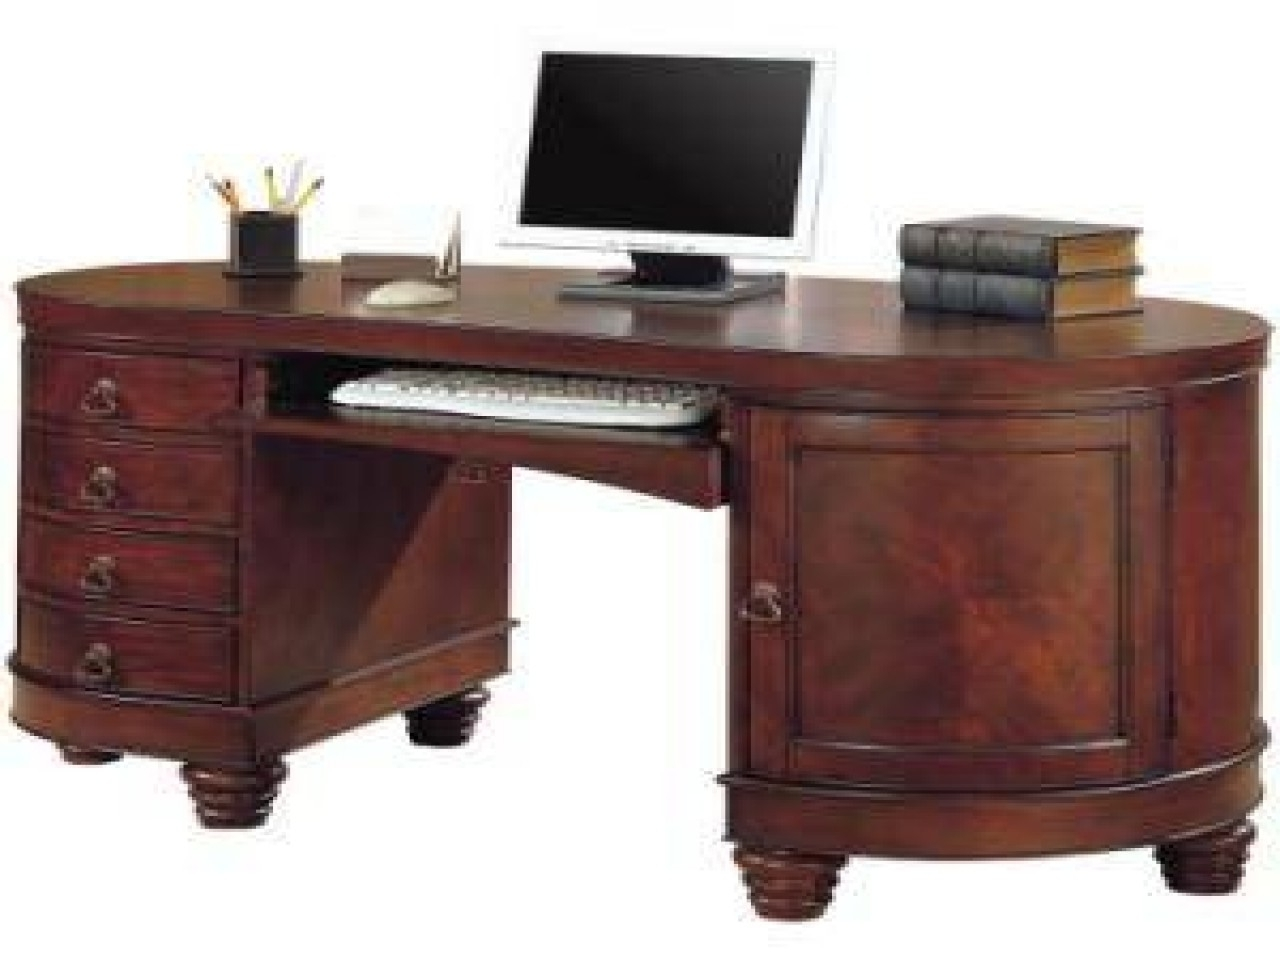 2019 Antique Computer Desks Antique Furniture – Ashley Furniture Pertaining To Antique Computer Desks (View 1 of 20)